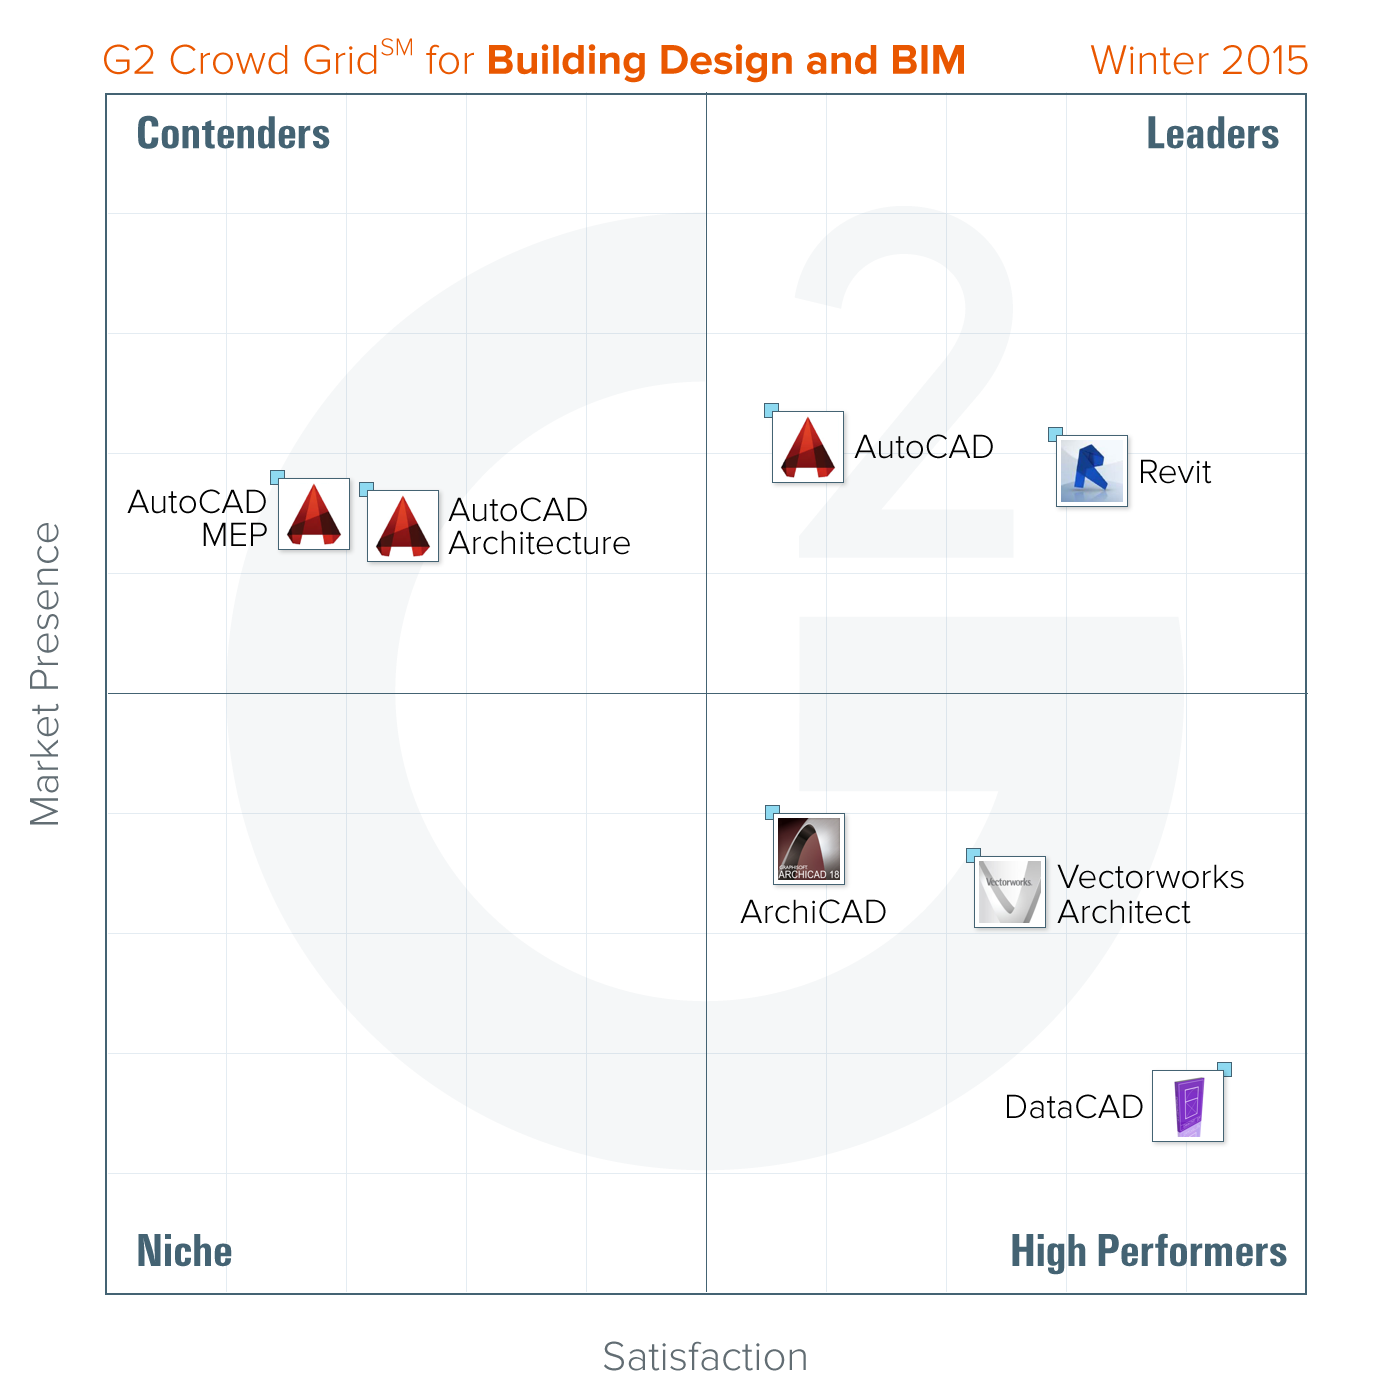 Report Ranks Best BIM and Building Design Platforms for 2015, Courtesy of G2 Crowd